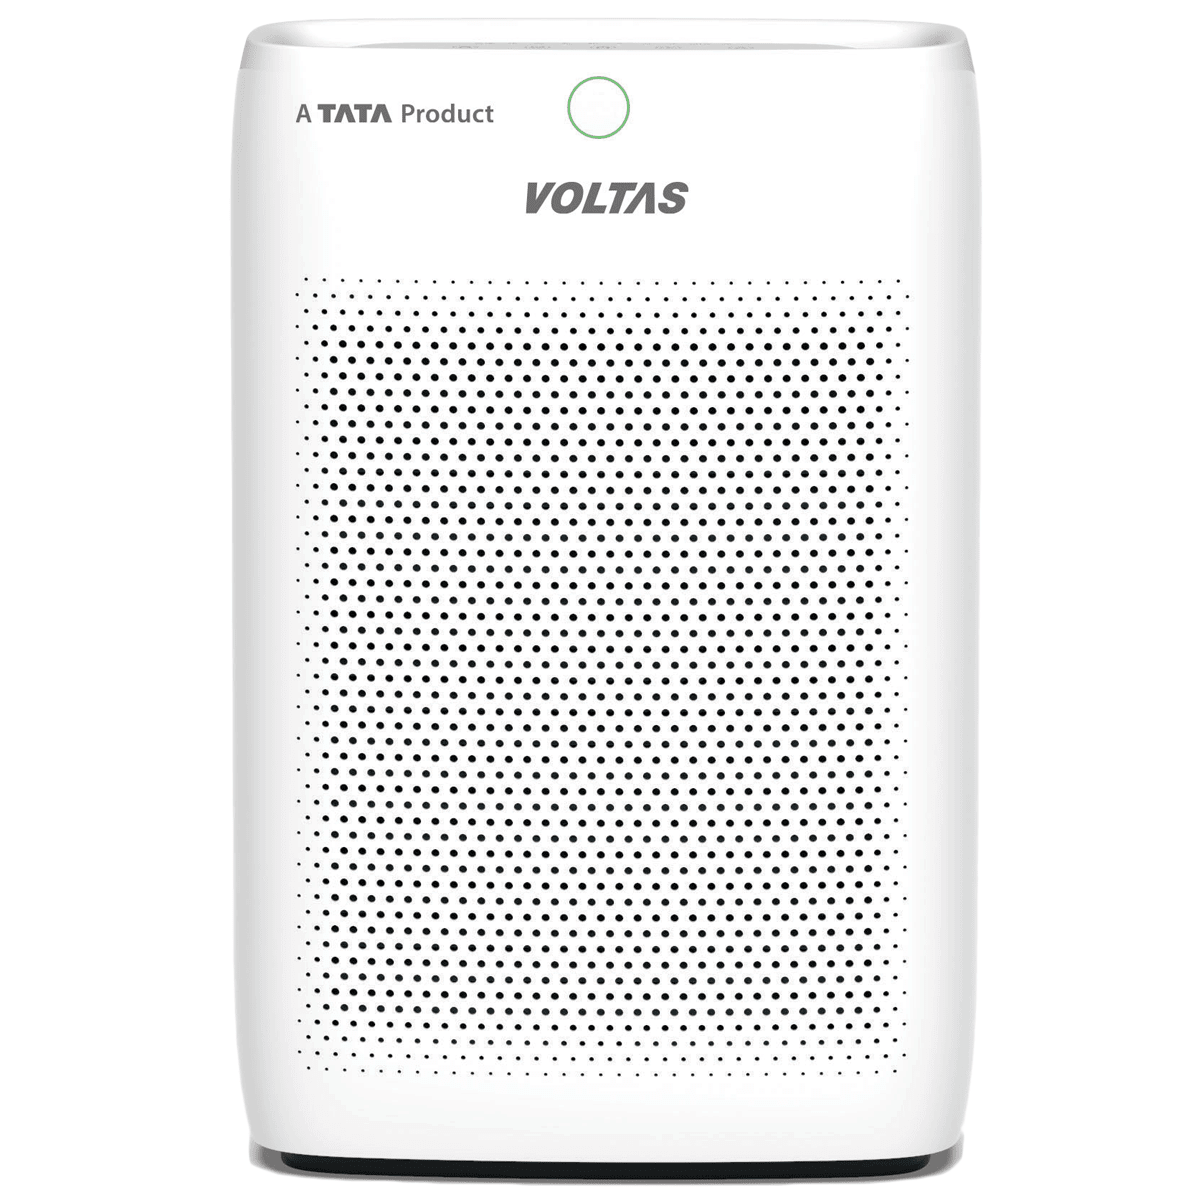 Voltas HEPA Filter Plus UVC Technology Air Purifier (Air Quality Indicator, VAP26TWV, White)